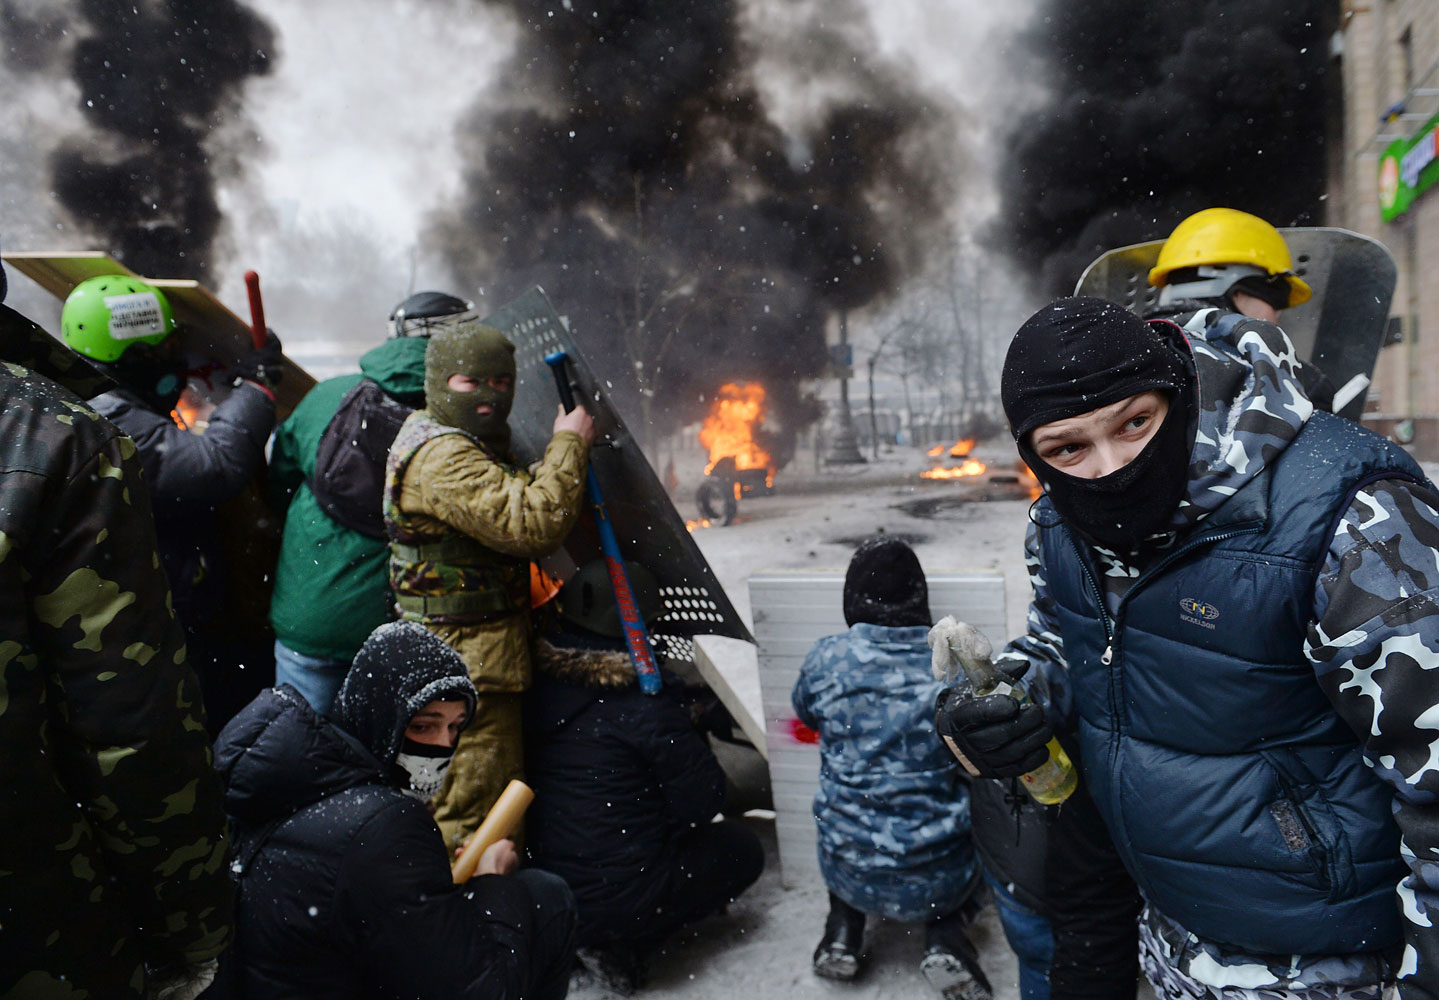 A demonstrator holds an incendiary device as protesters clash with police in the center of Kiev on Jan. 22, 2014.